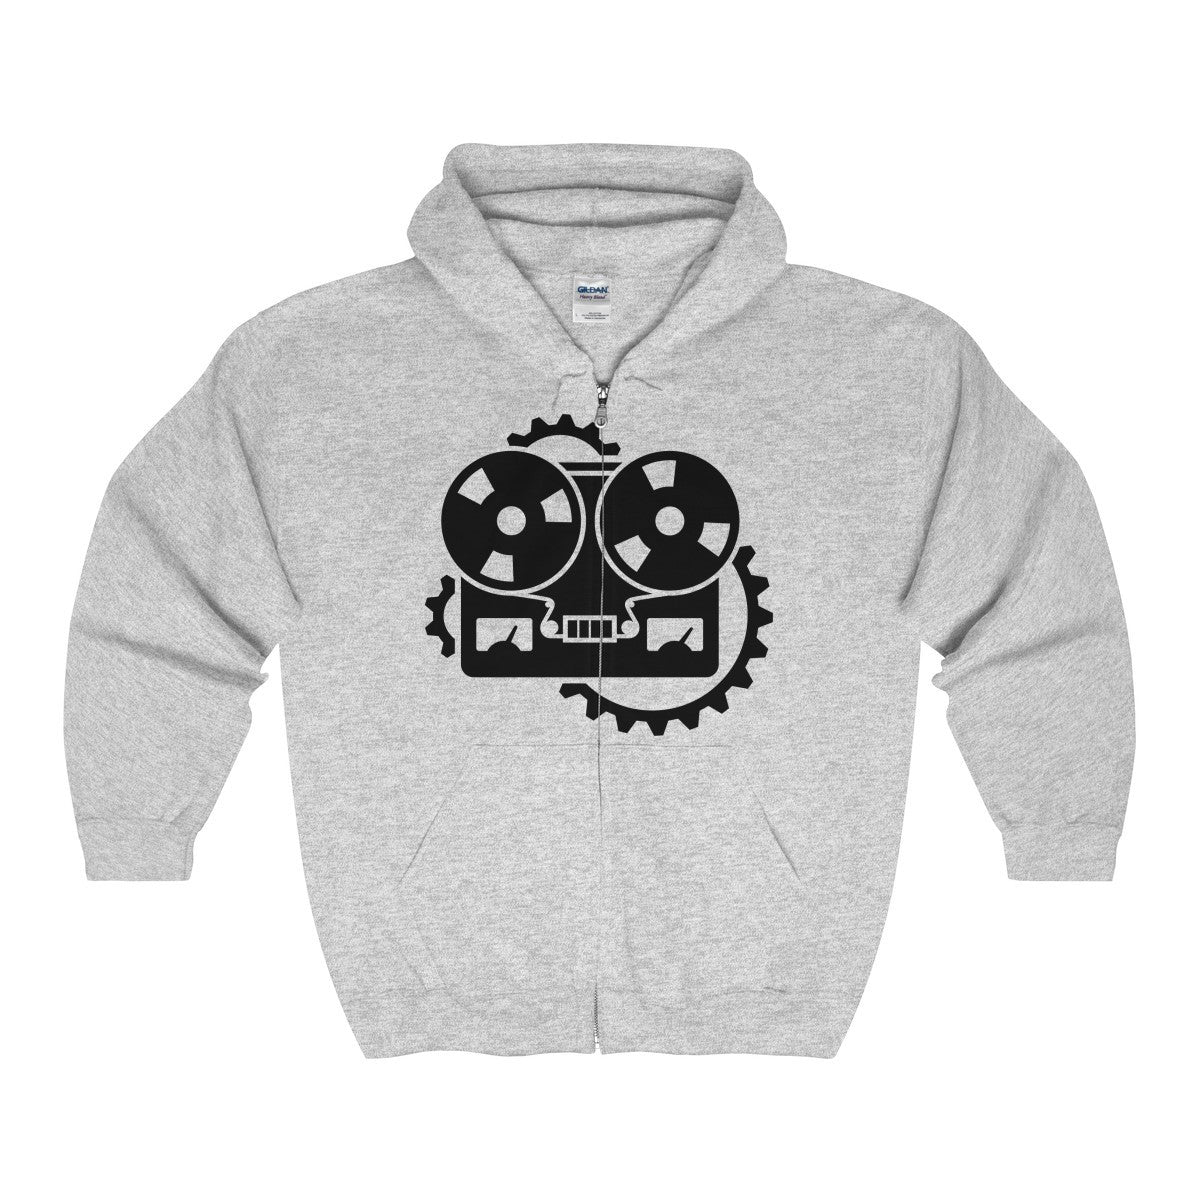 URM Tape Machine Zip Hooded Sweatshirt, Black Print